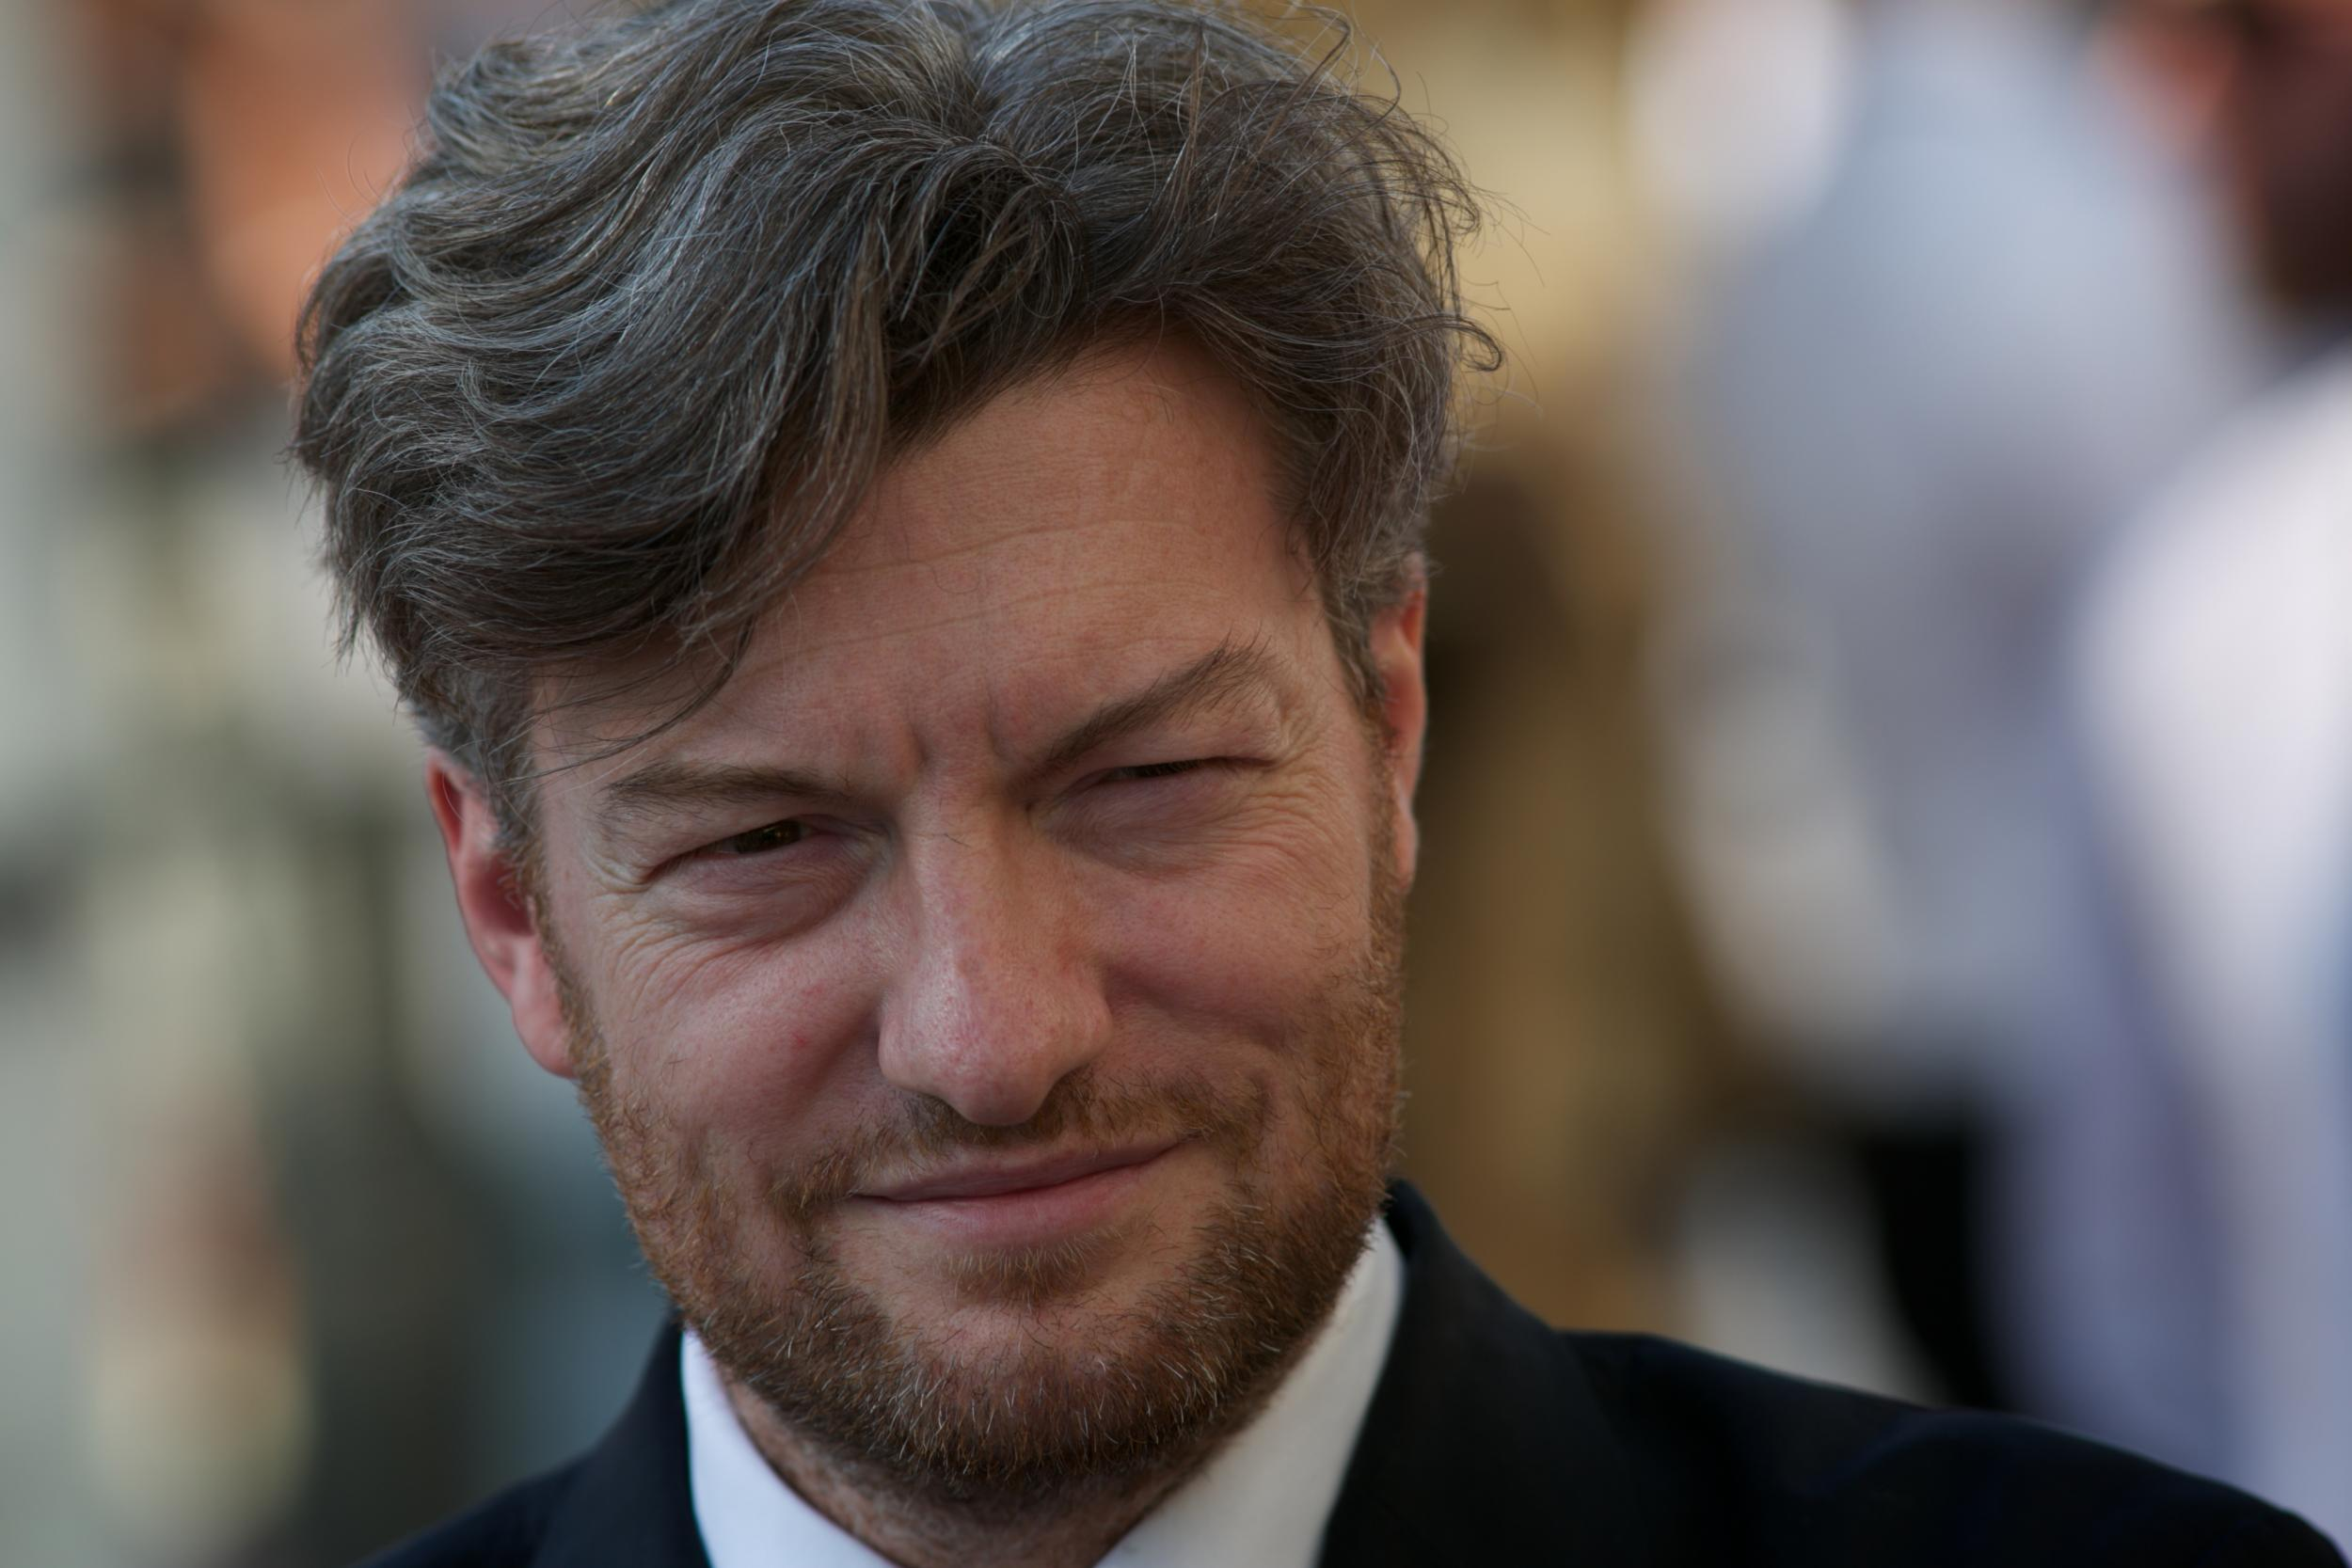 Black Mirror creator Charlie Brooker: 'I'm loath to say this